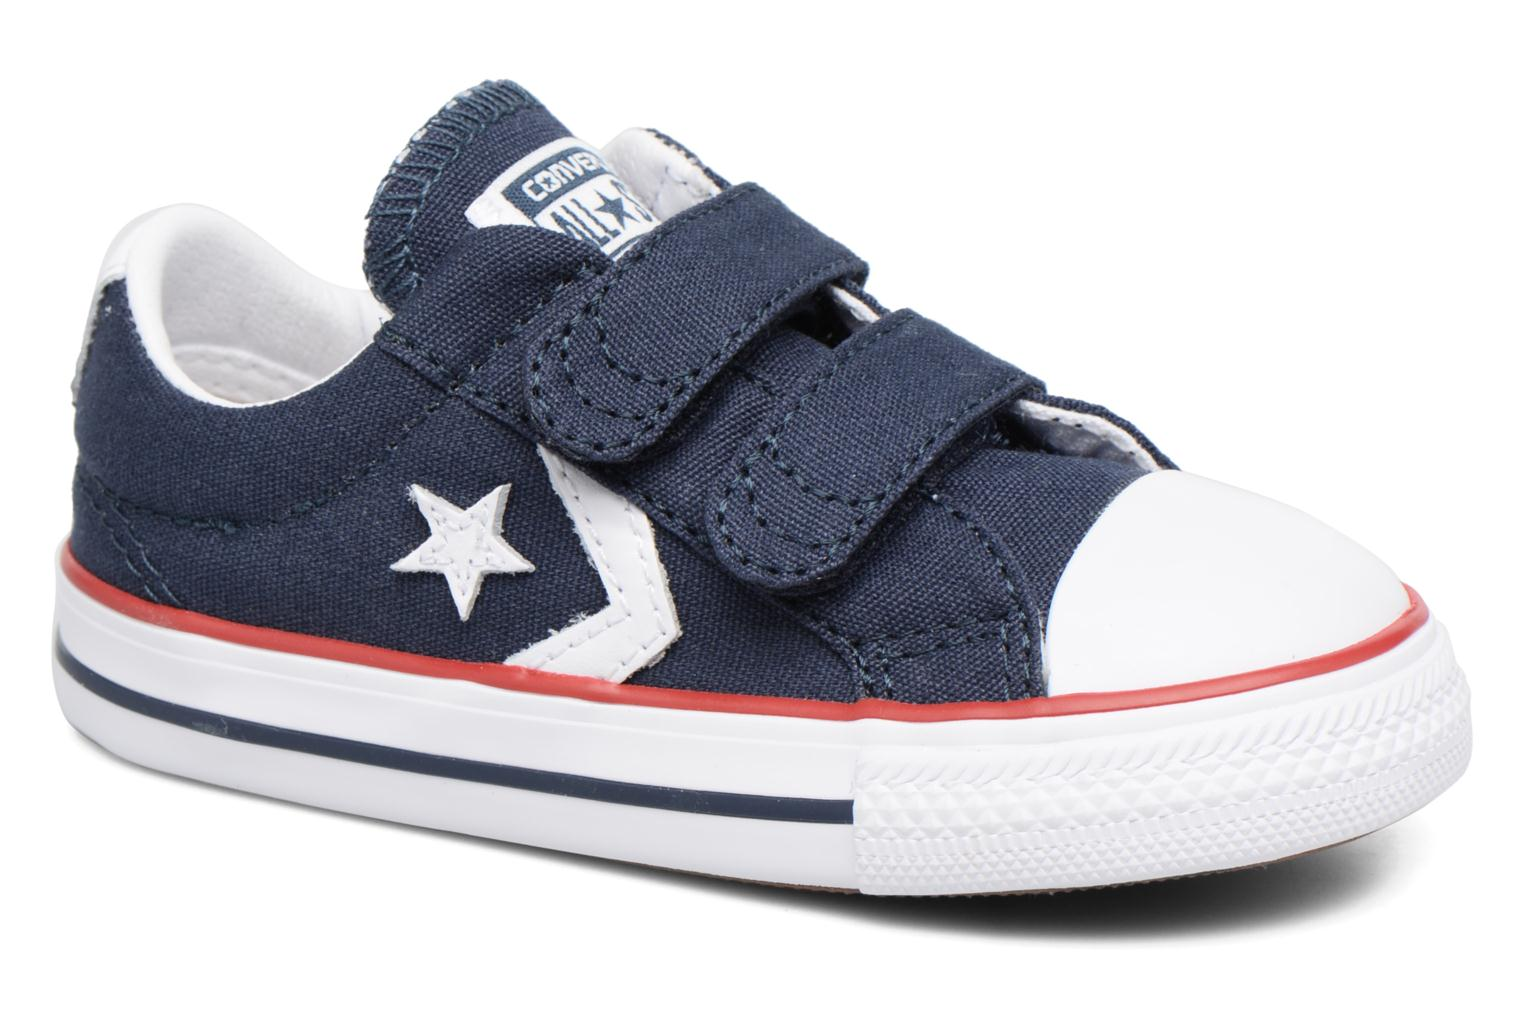 Sneakers Star Player 2V Ox by ConverseConverseBlauwPaar schoenen - Sneakers2285973080820Textiel